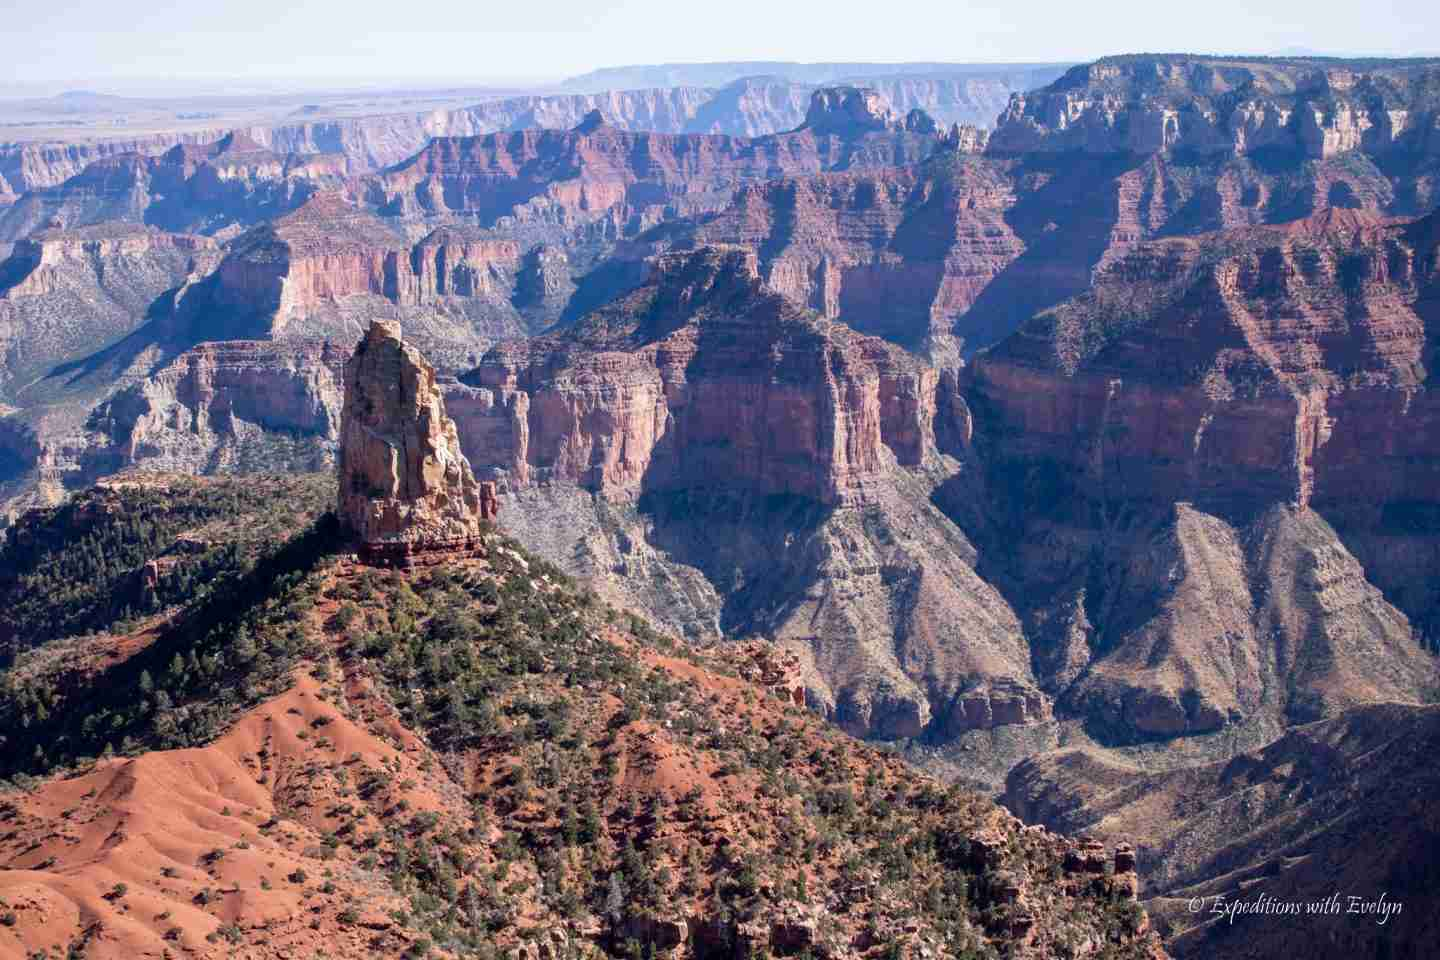 Layers of the Grand Canyon from Cape Royal viewpoint